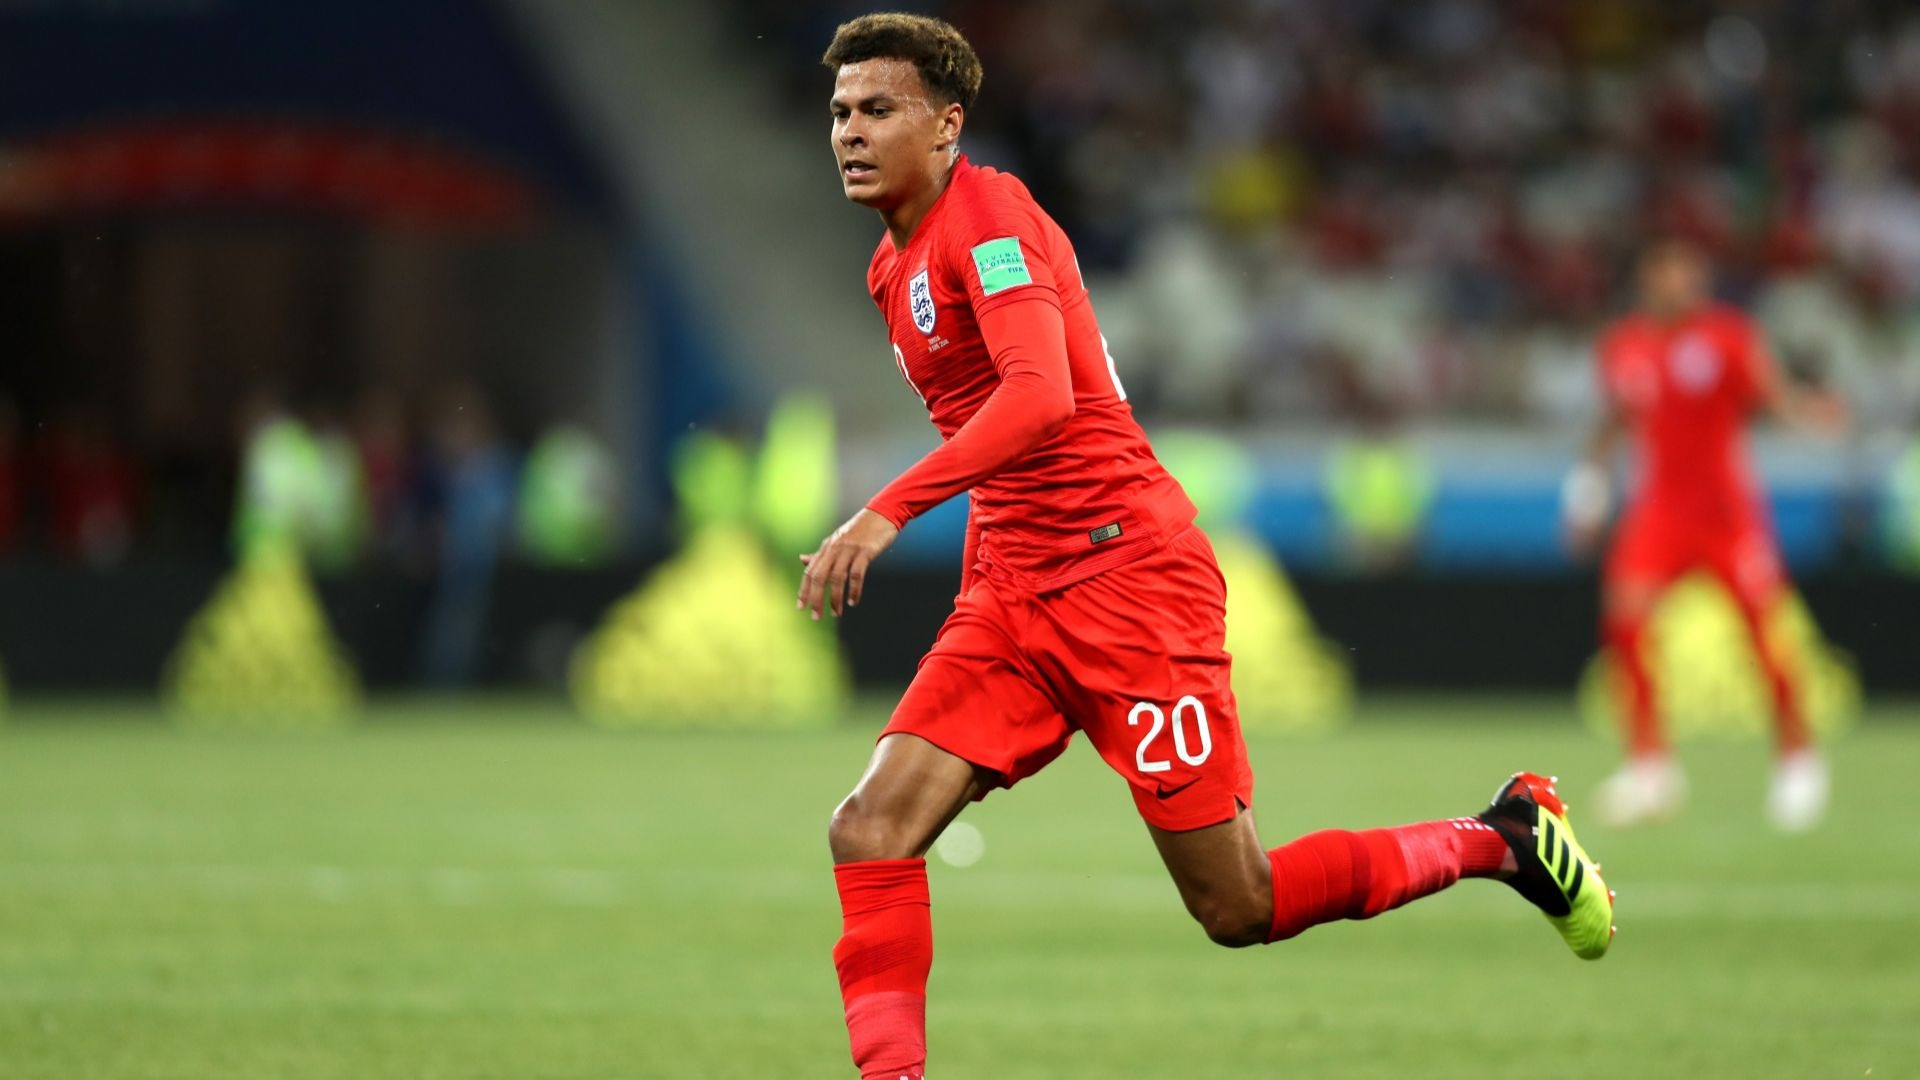 Dele Alli playing for England.